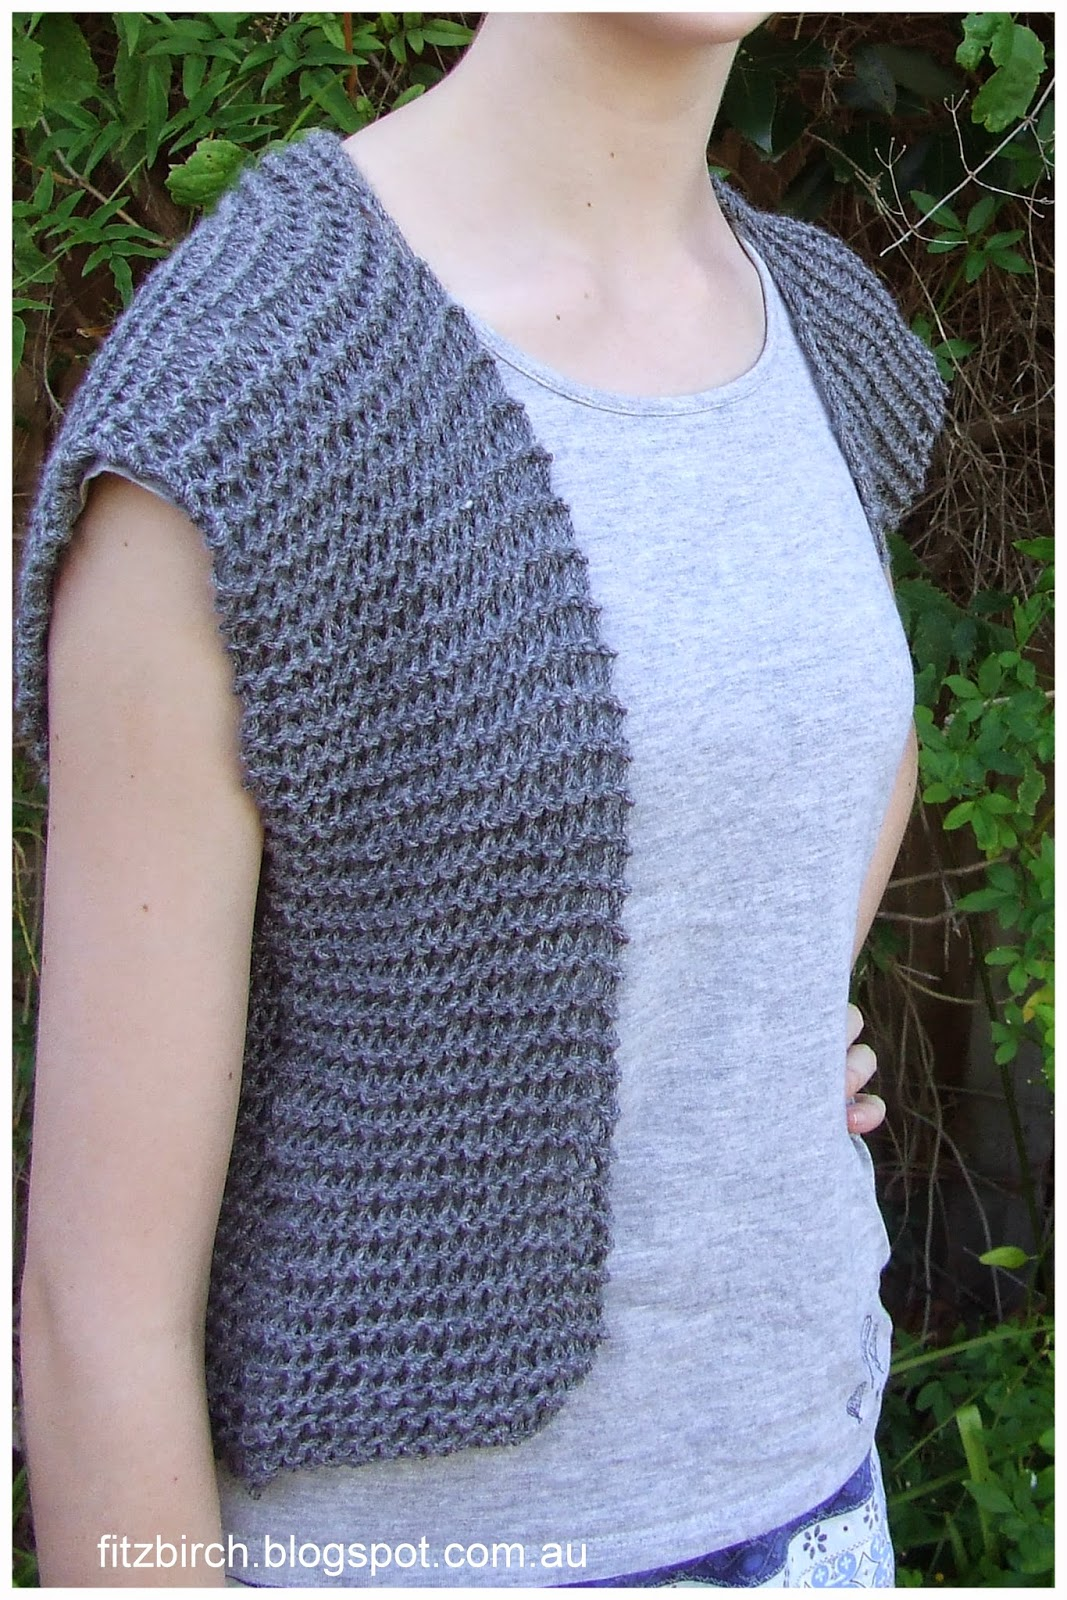 FitzBirch Crafts: Garter Stitch Beginner Vest